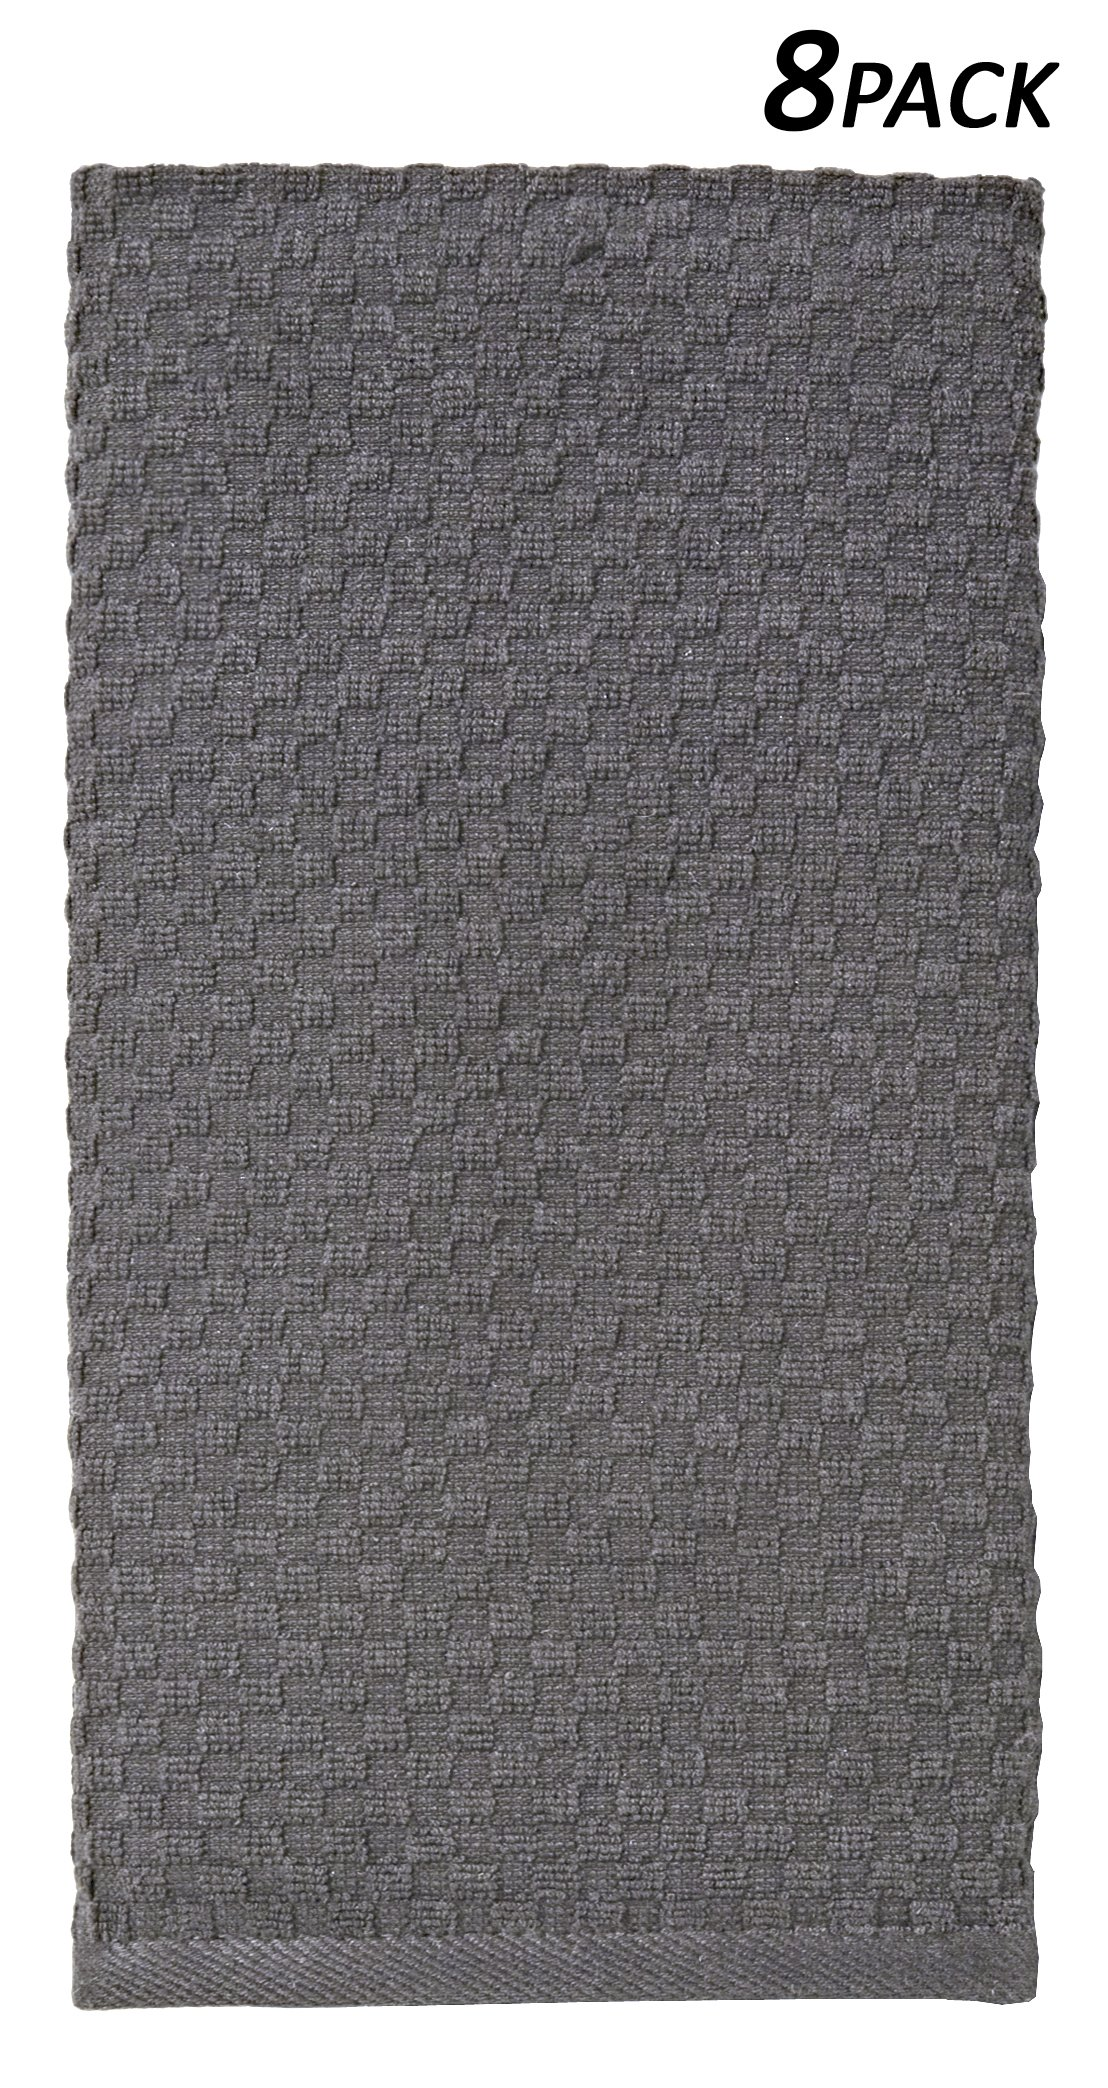 Get Quotations Cotton Craft 8 Pack Charcoal Eurocafe Waffle Weave Terry Kitchen Towels 16x28 100 Ringspun